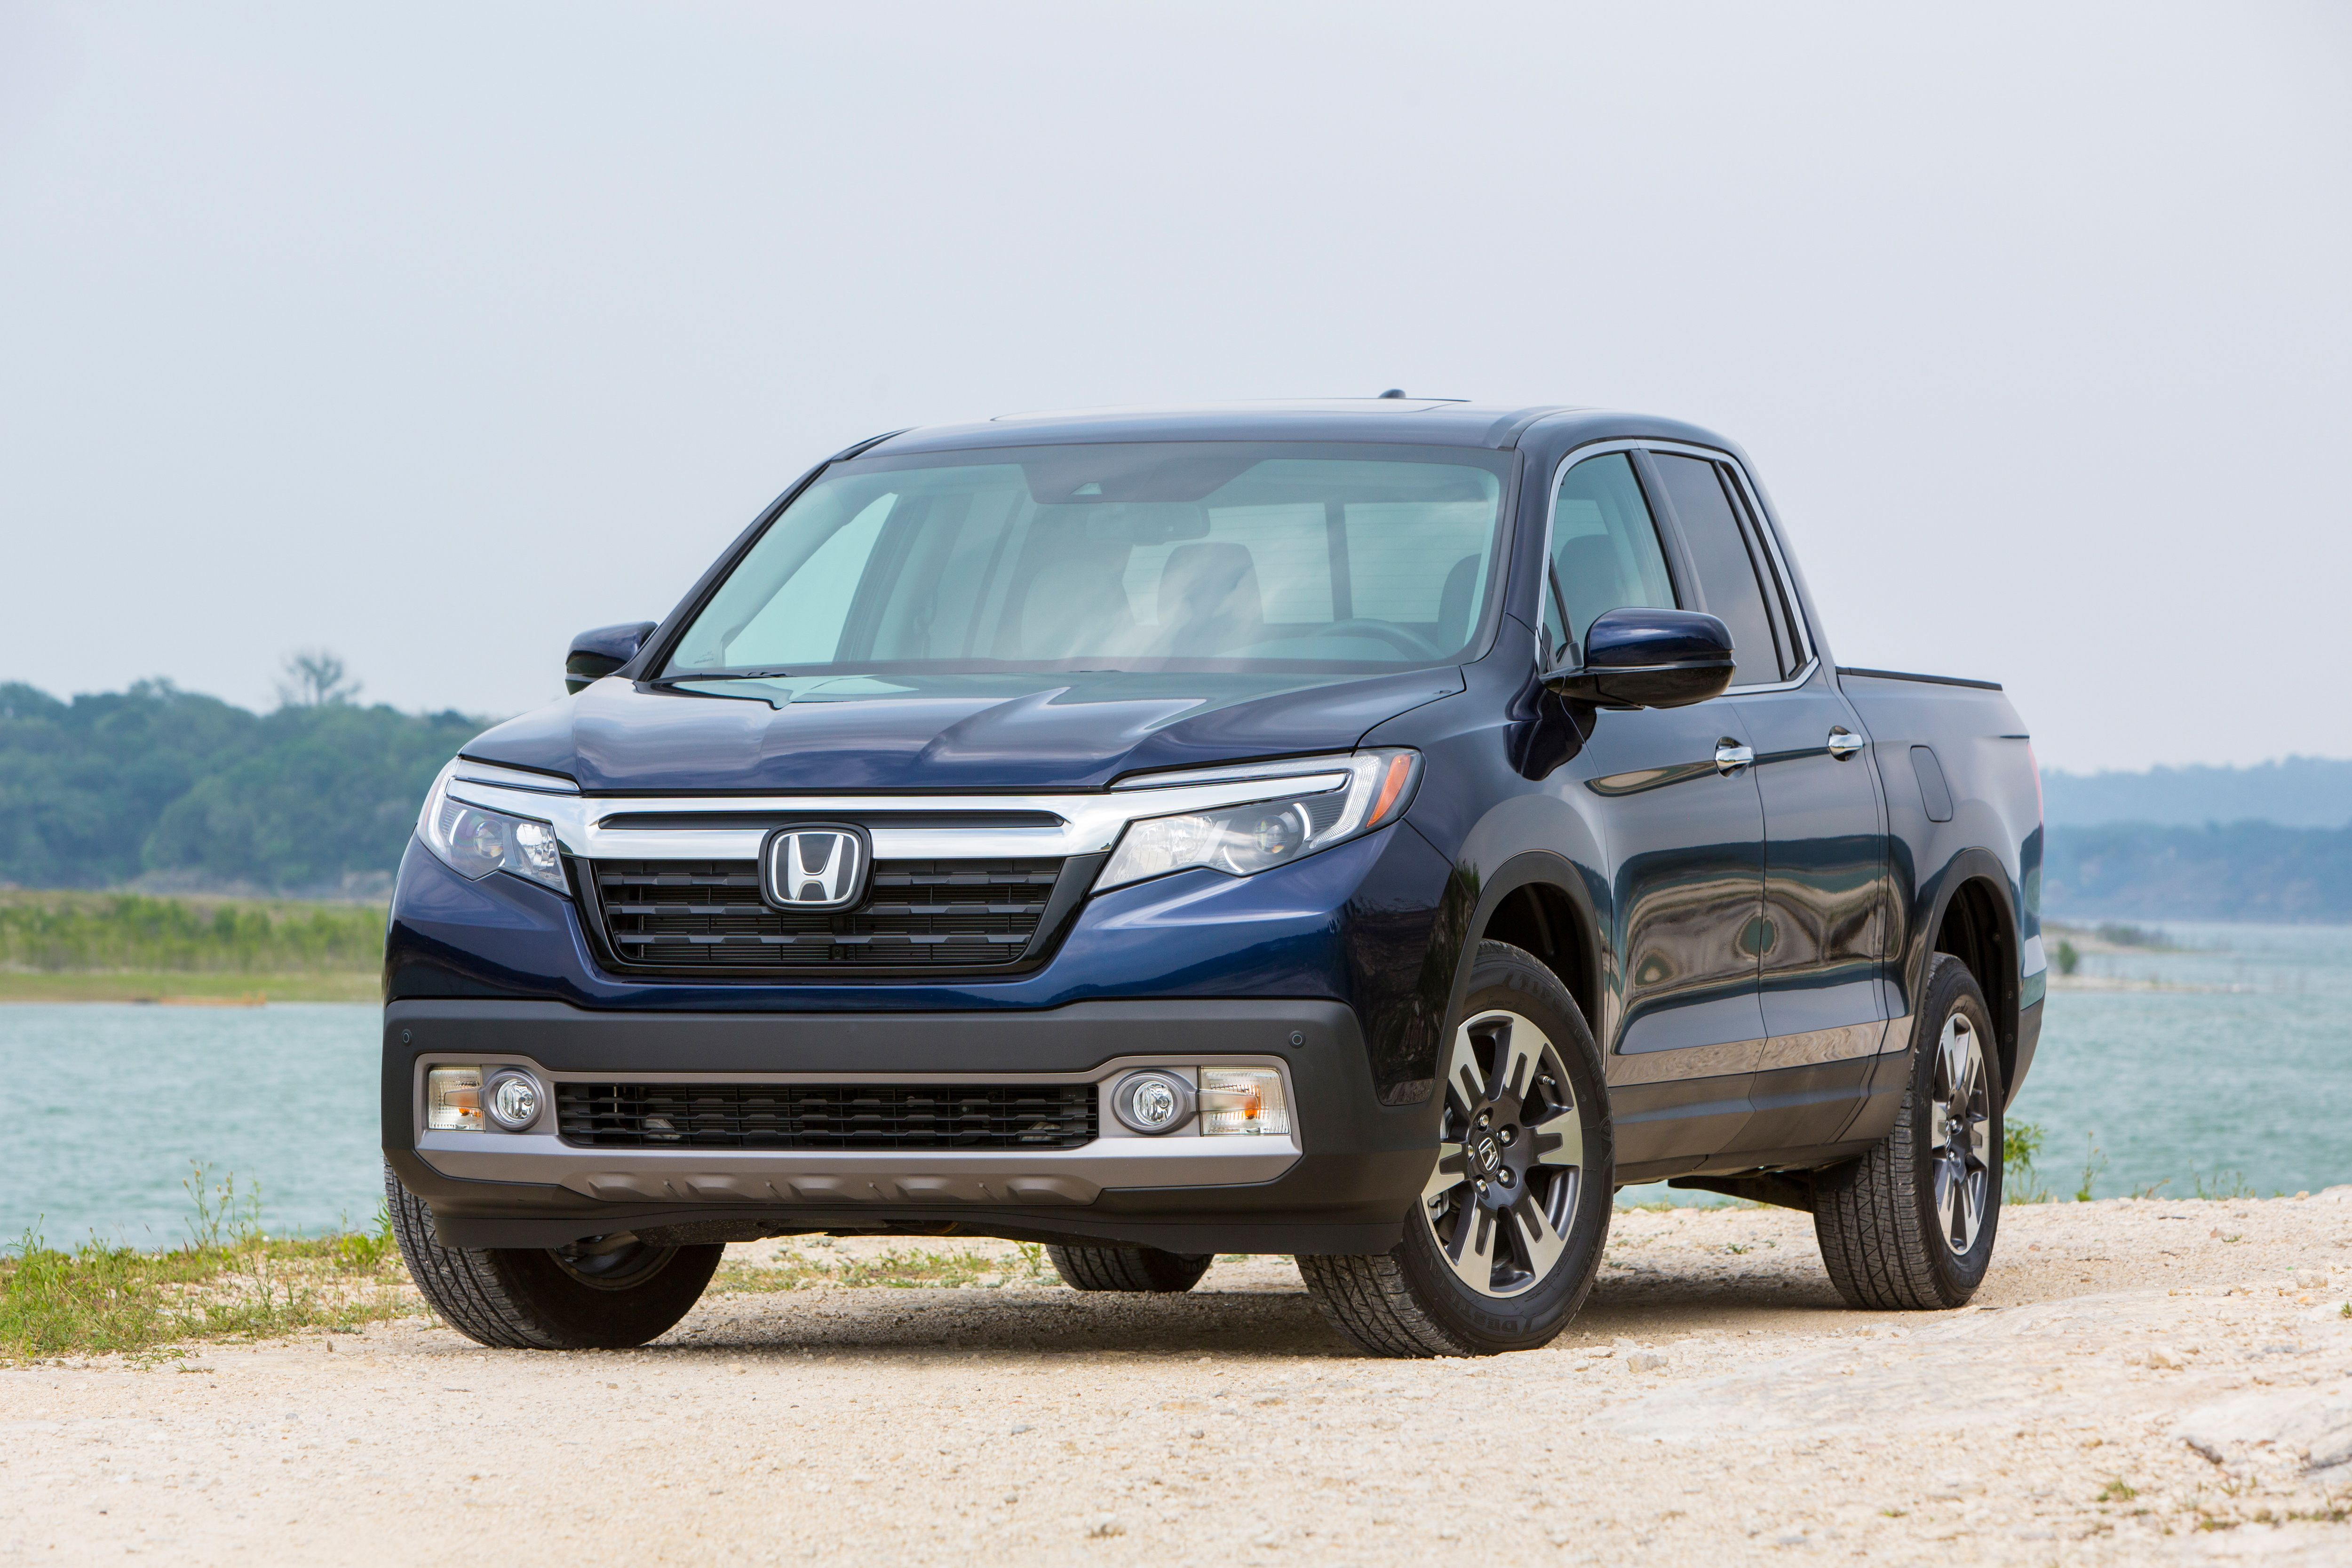 comments on 2020 honda ridgeline adds 3 gears to its transmission 3910 to its base price car and driver backfires car and driver backfires